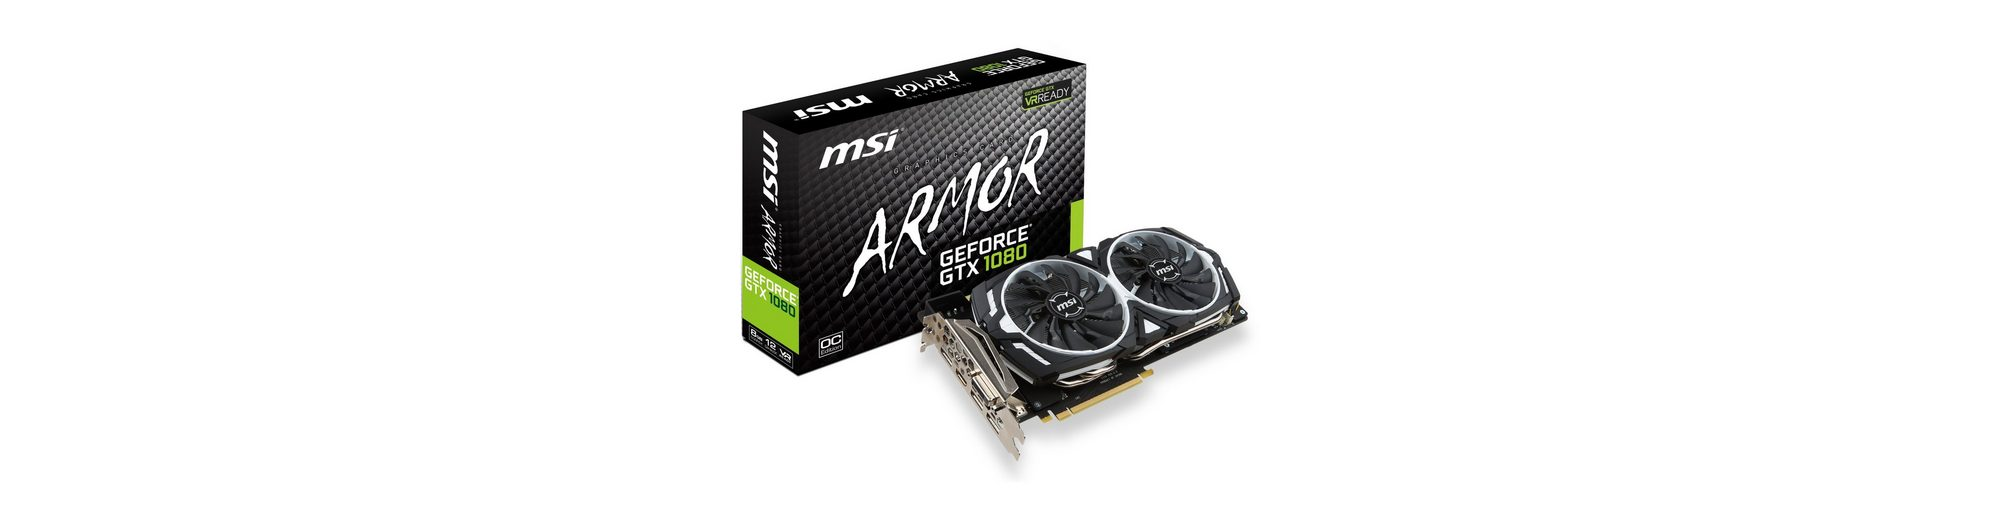 MSI Grafikkarte »GeForce GTX 1080 ARMOR 8G OC«